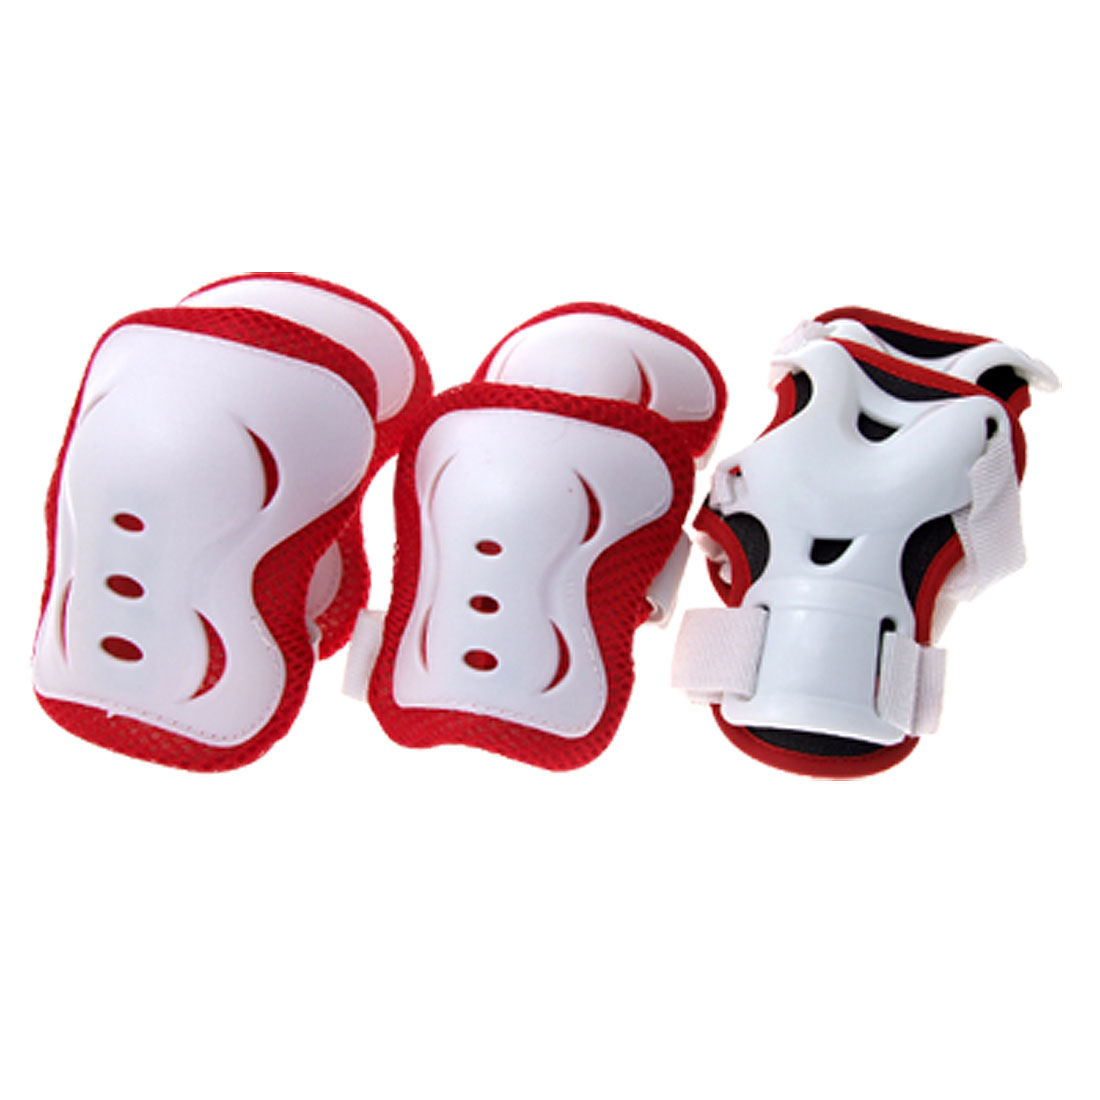 Red Elbow Knee Wrist Support Sport Protector Set for Children